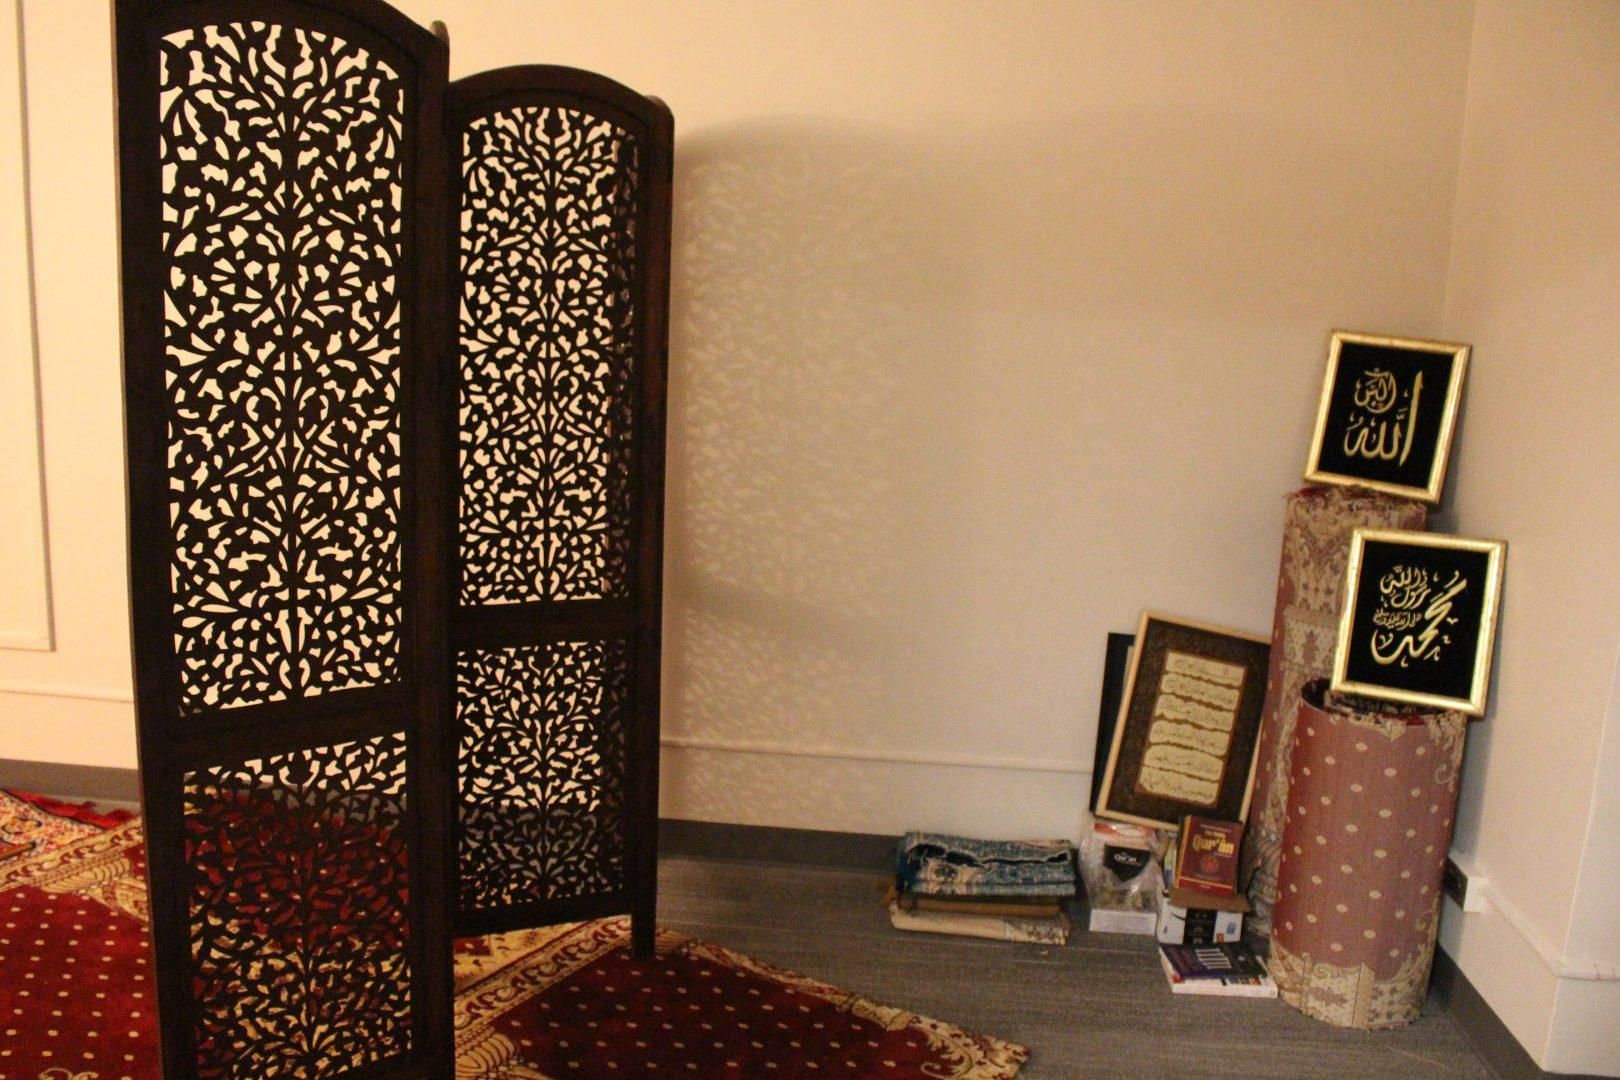 Muslim Community At Fordham Finds New Prayer Space